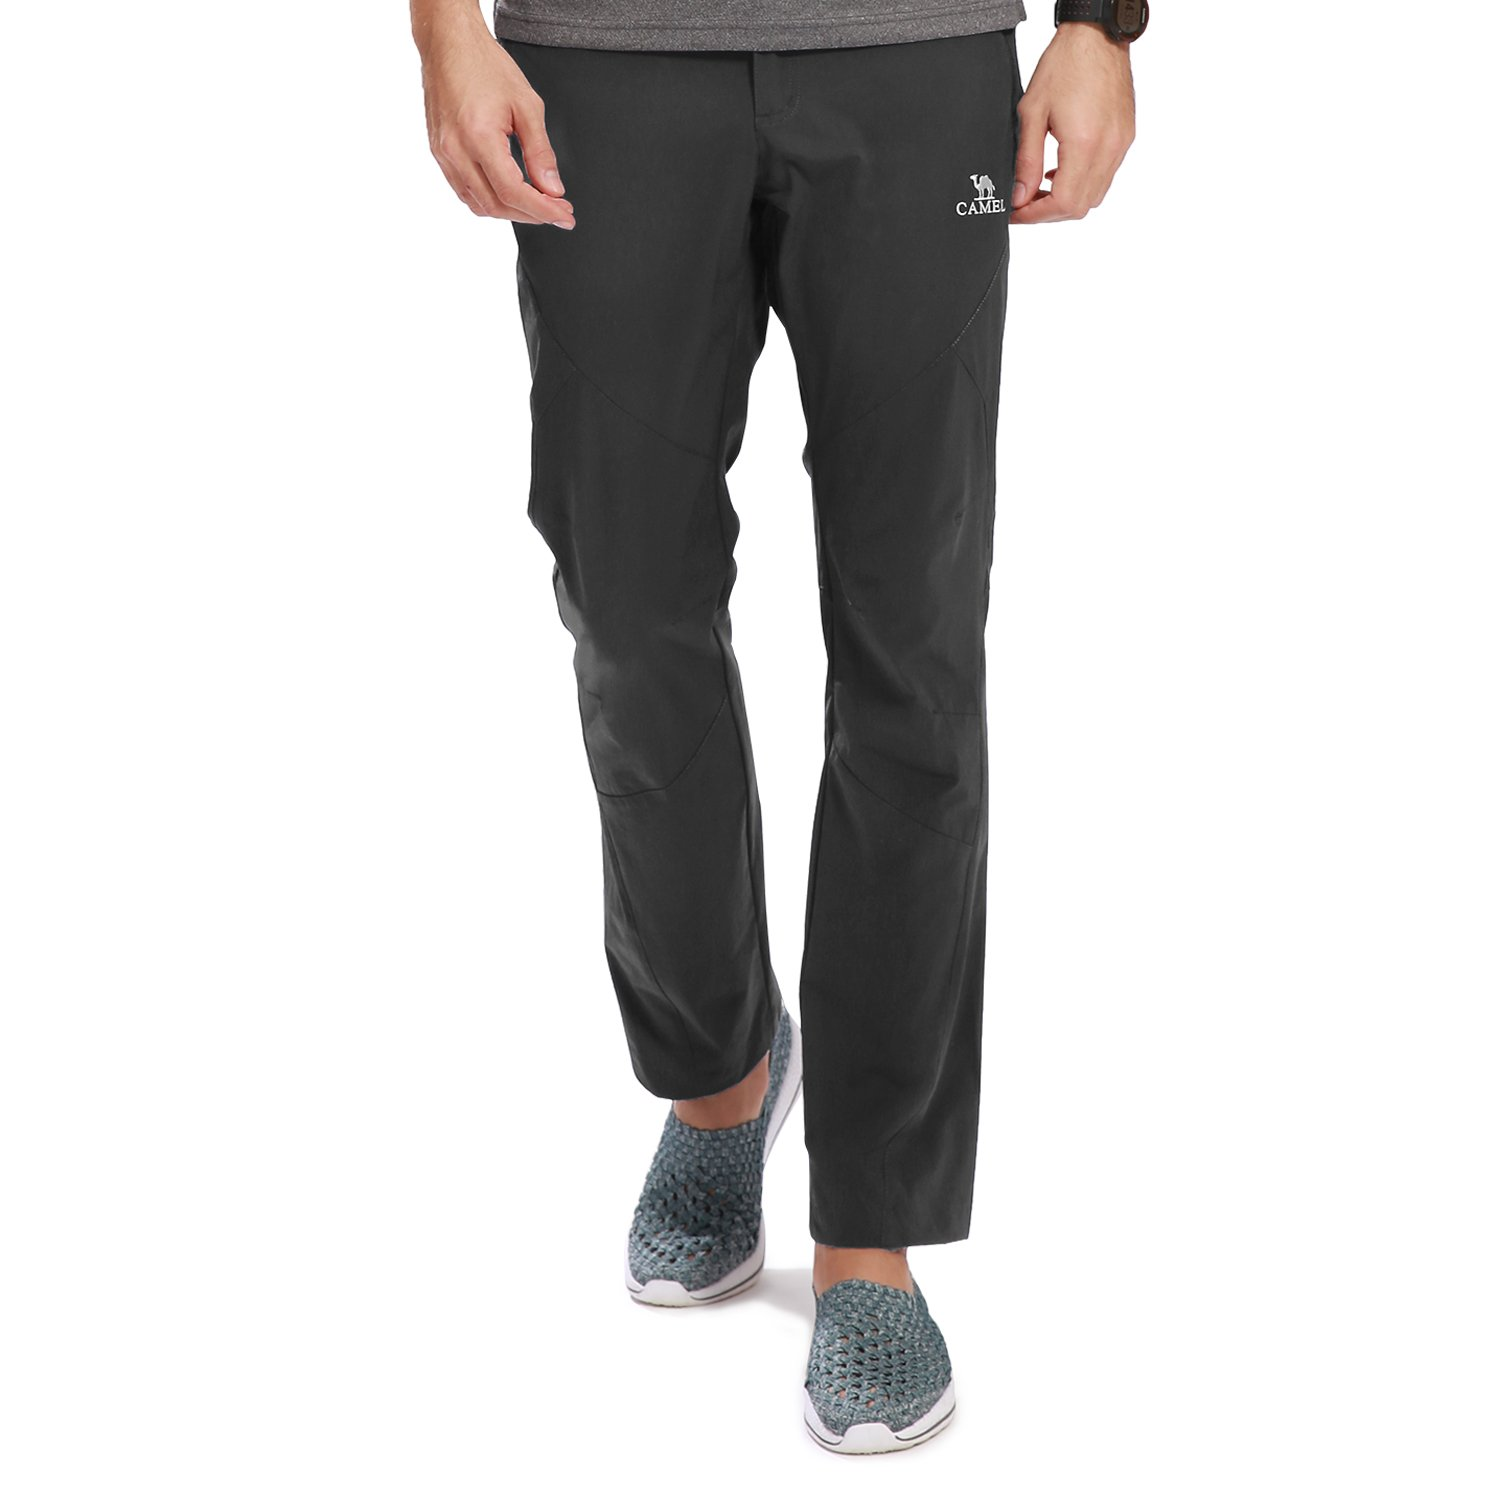 313f5fdcc71 MATERIAL --- These classic quick dry pants are made of nylon and spandex.  The advantages of nylon are strong wear resistance and moisture absorption